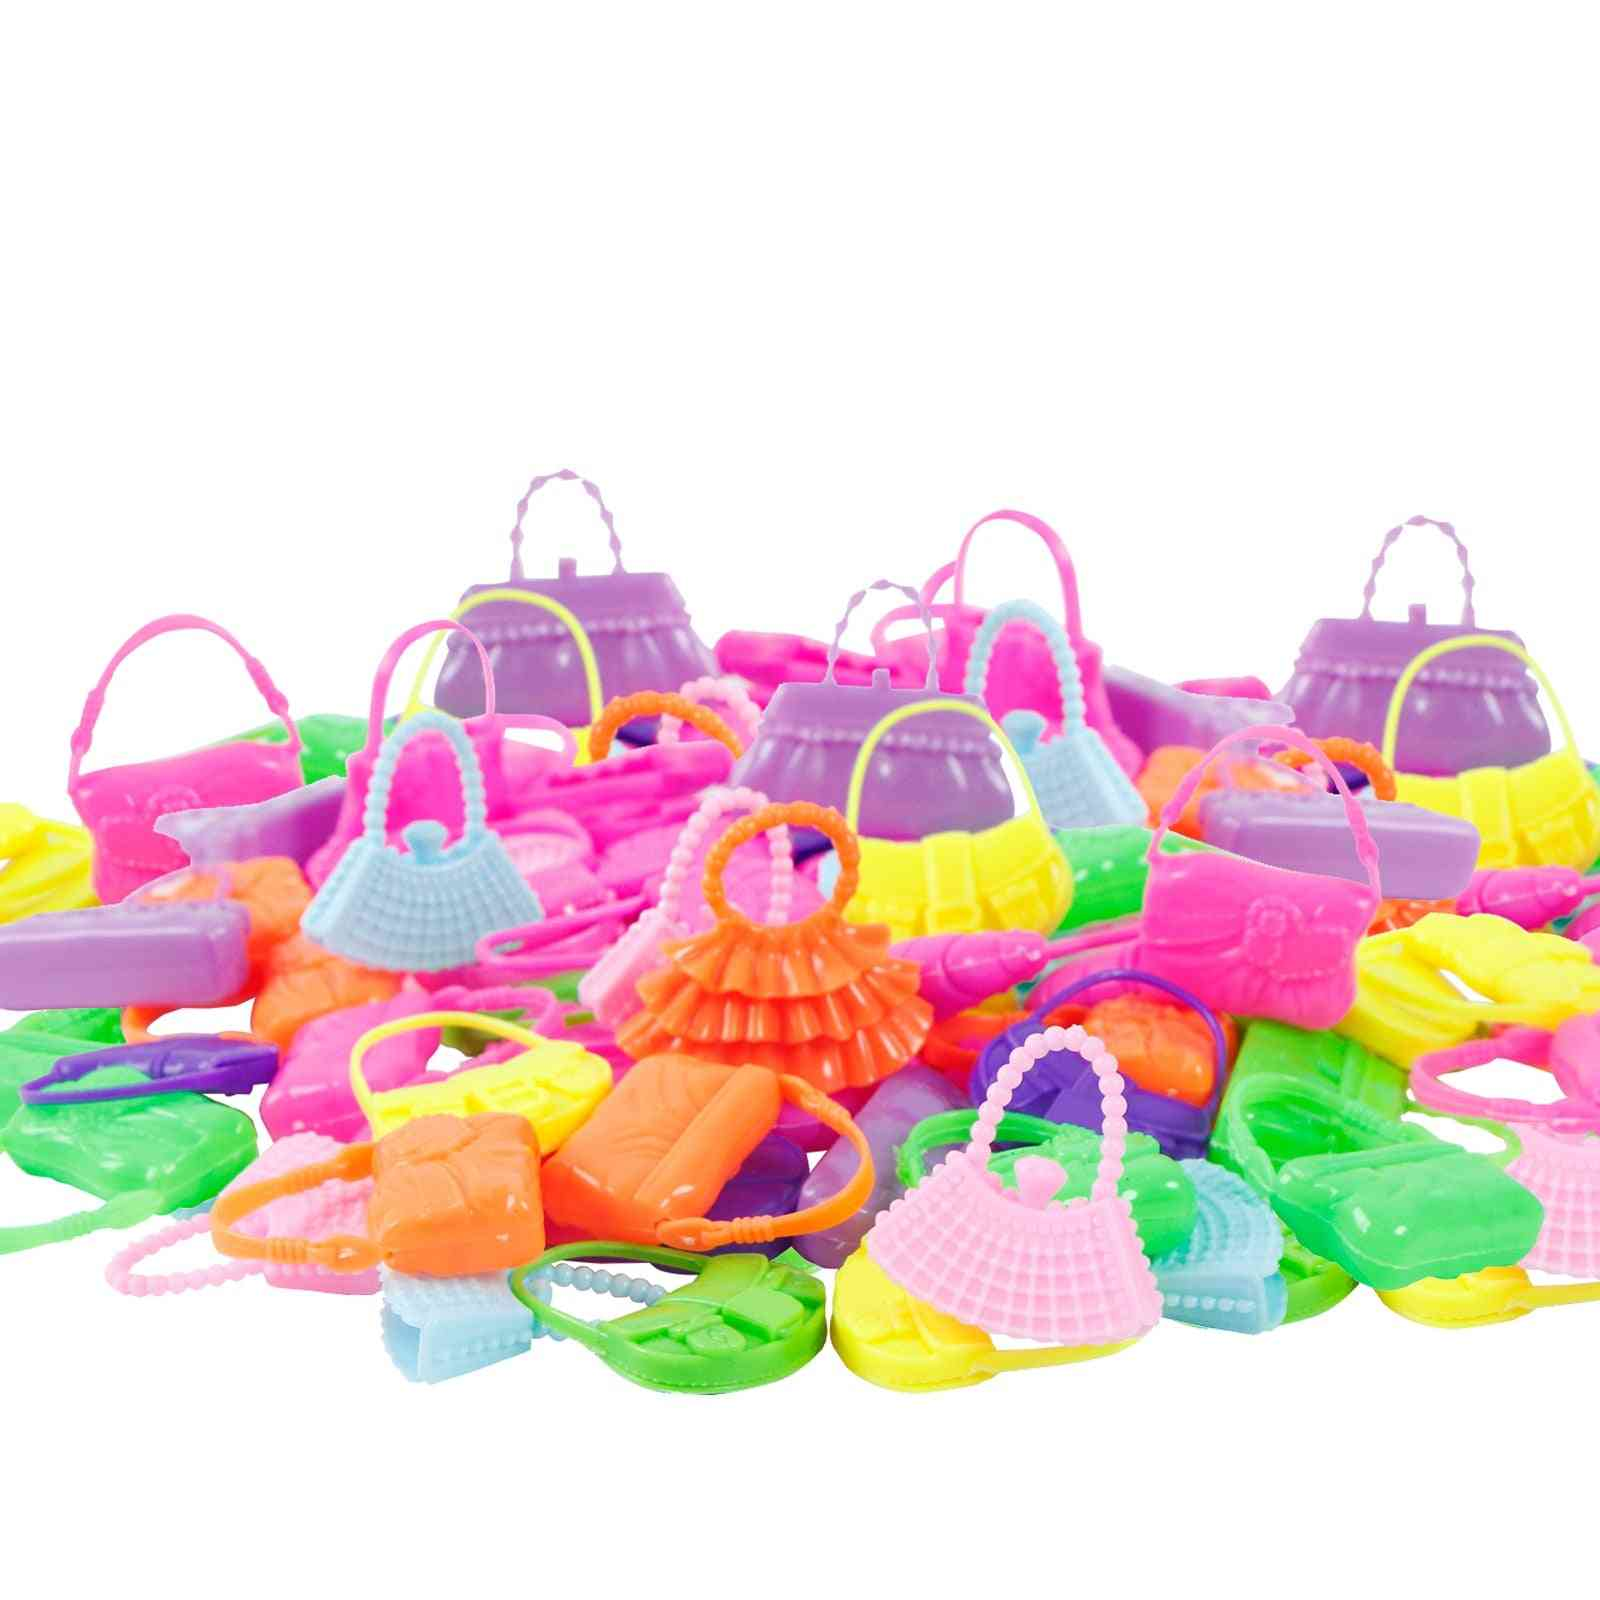 Doll Accessories - Mix Fashion Cute Dress, Glasses, Necklace, Handbag, Shoes For Barbie Doll